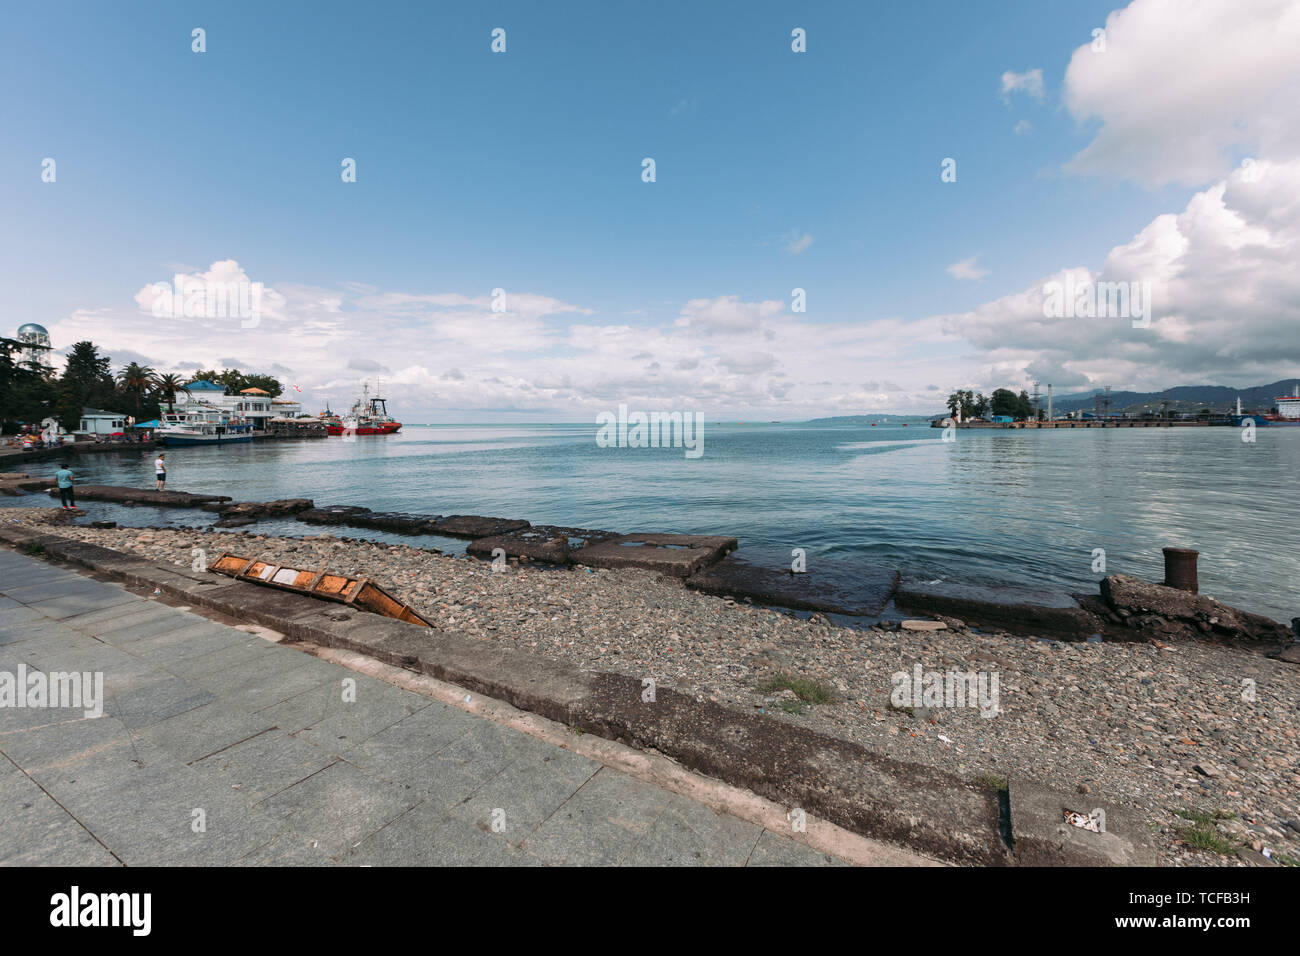 BATUMI, GEORGIA - September 11, 2018: View on the port of Batumi, Georgia in sunny day - Stock Image